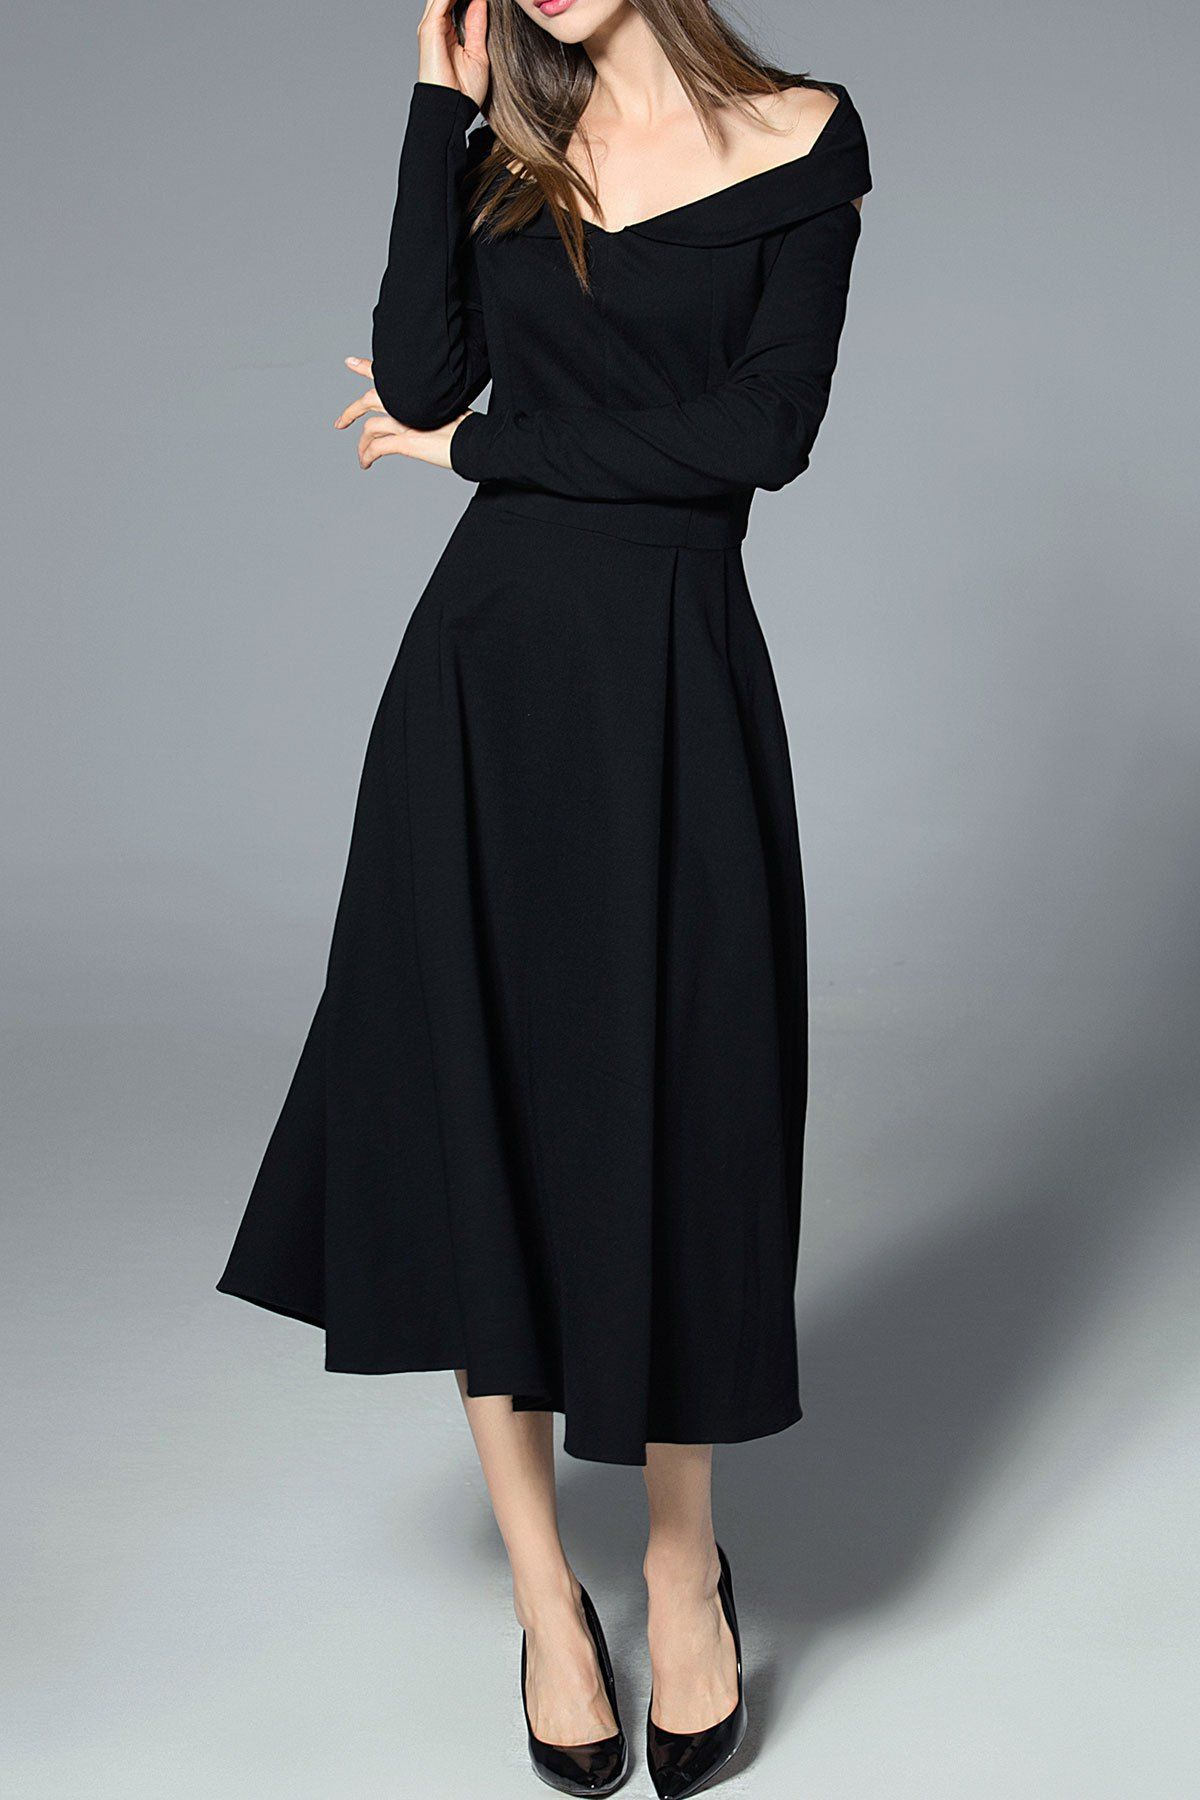 9f4c4ca18a Blueoxy Black Long Sleeve Off The Shoulder Dress